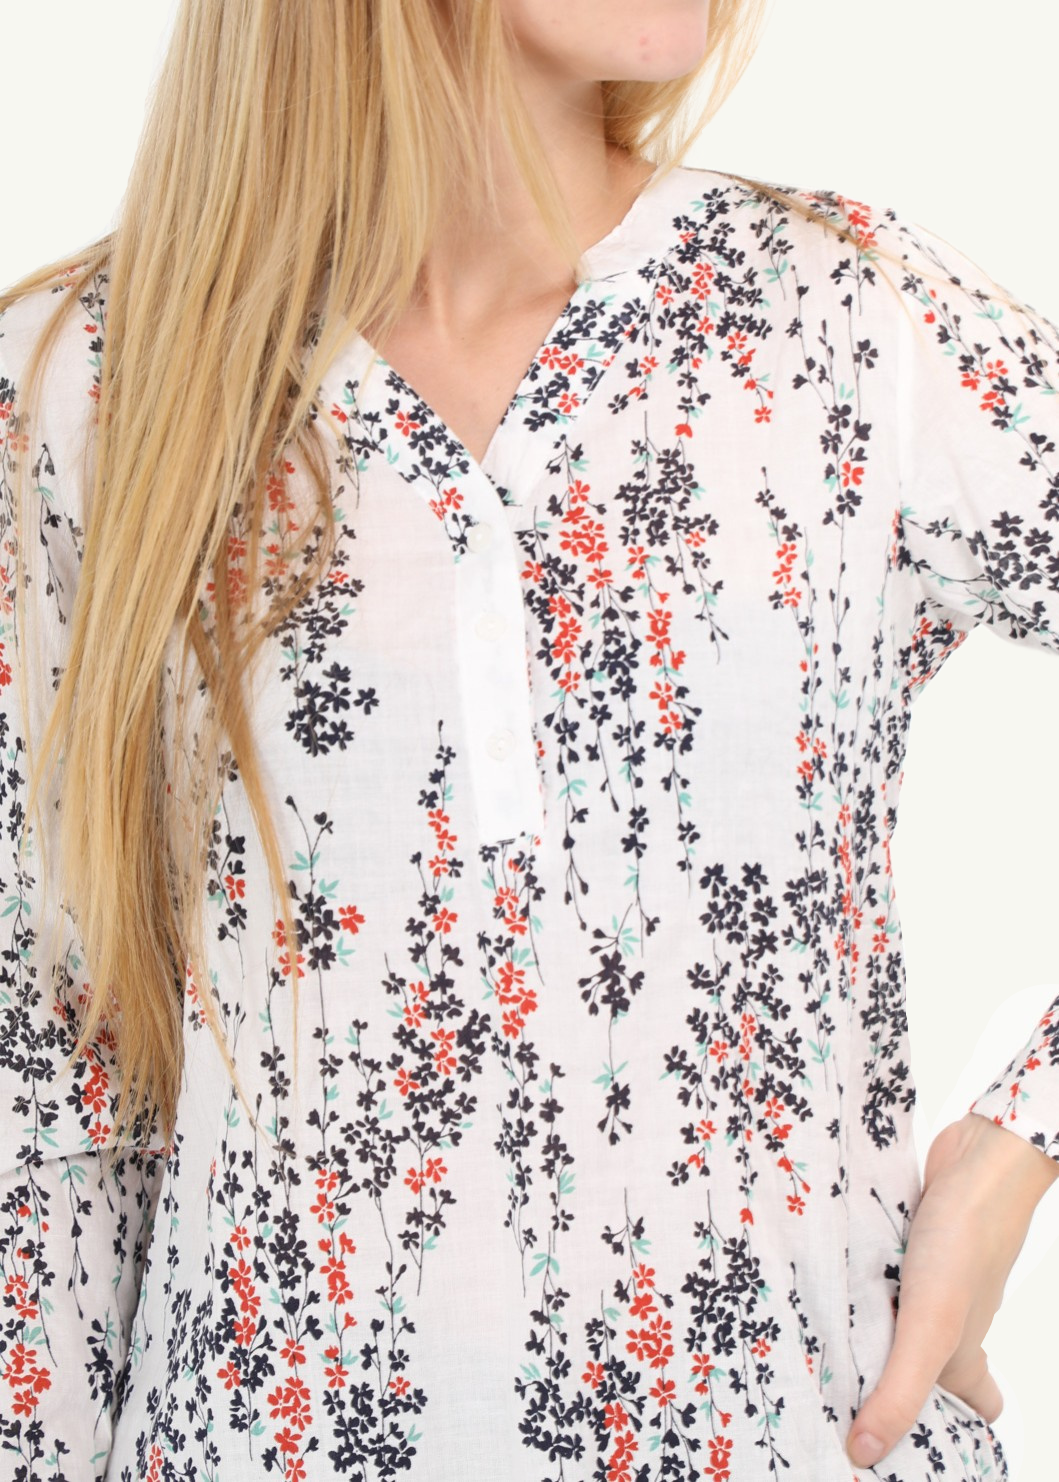 ELOISE - Patterned Shirt